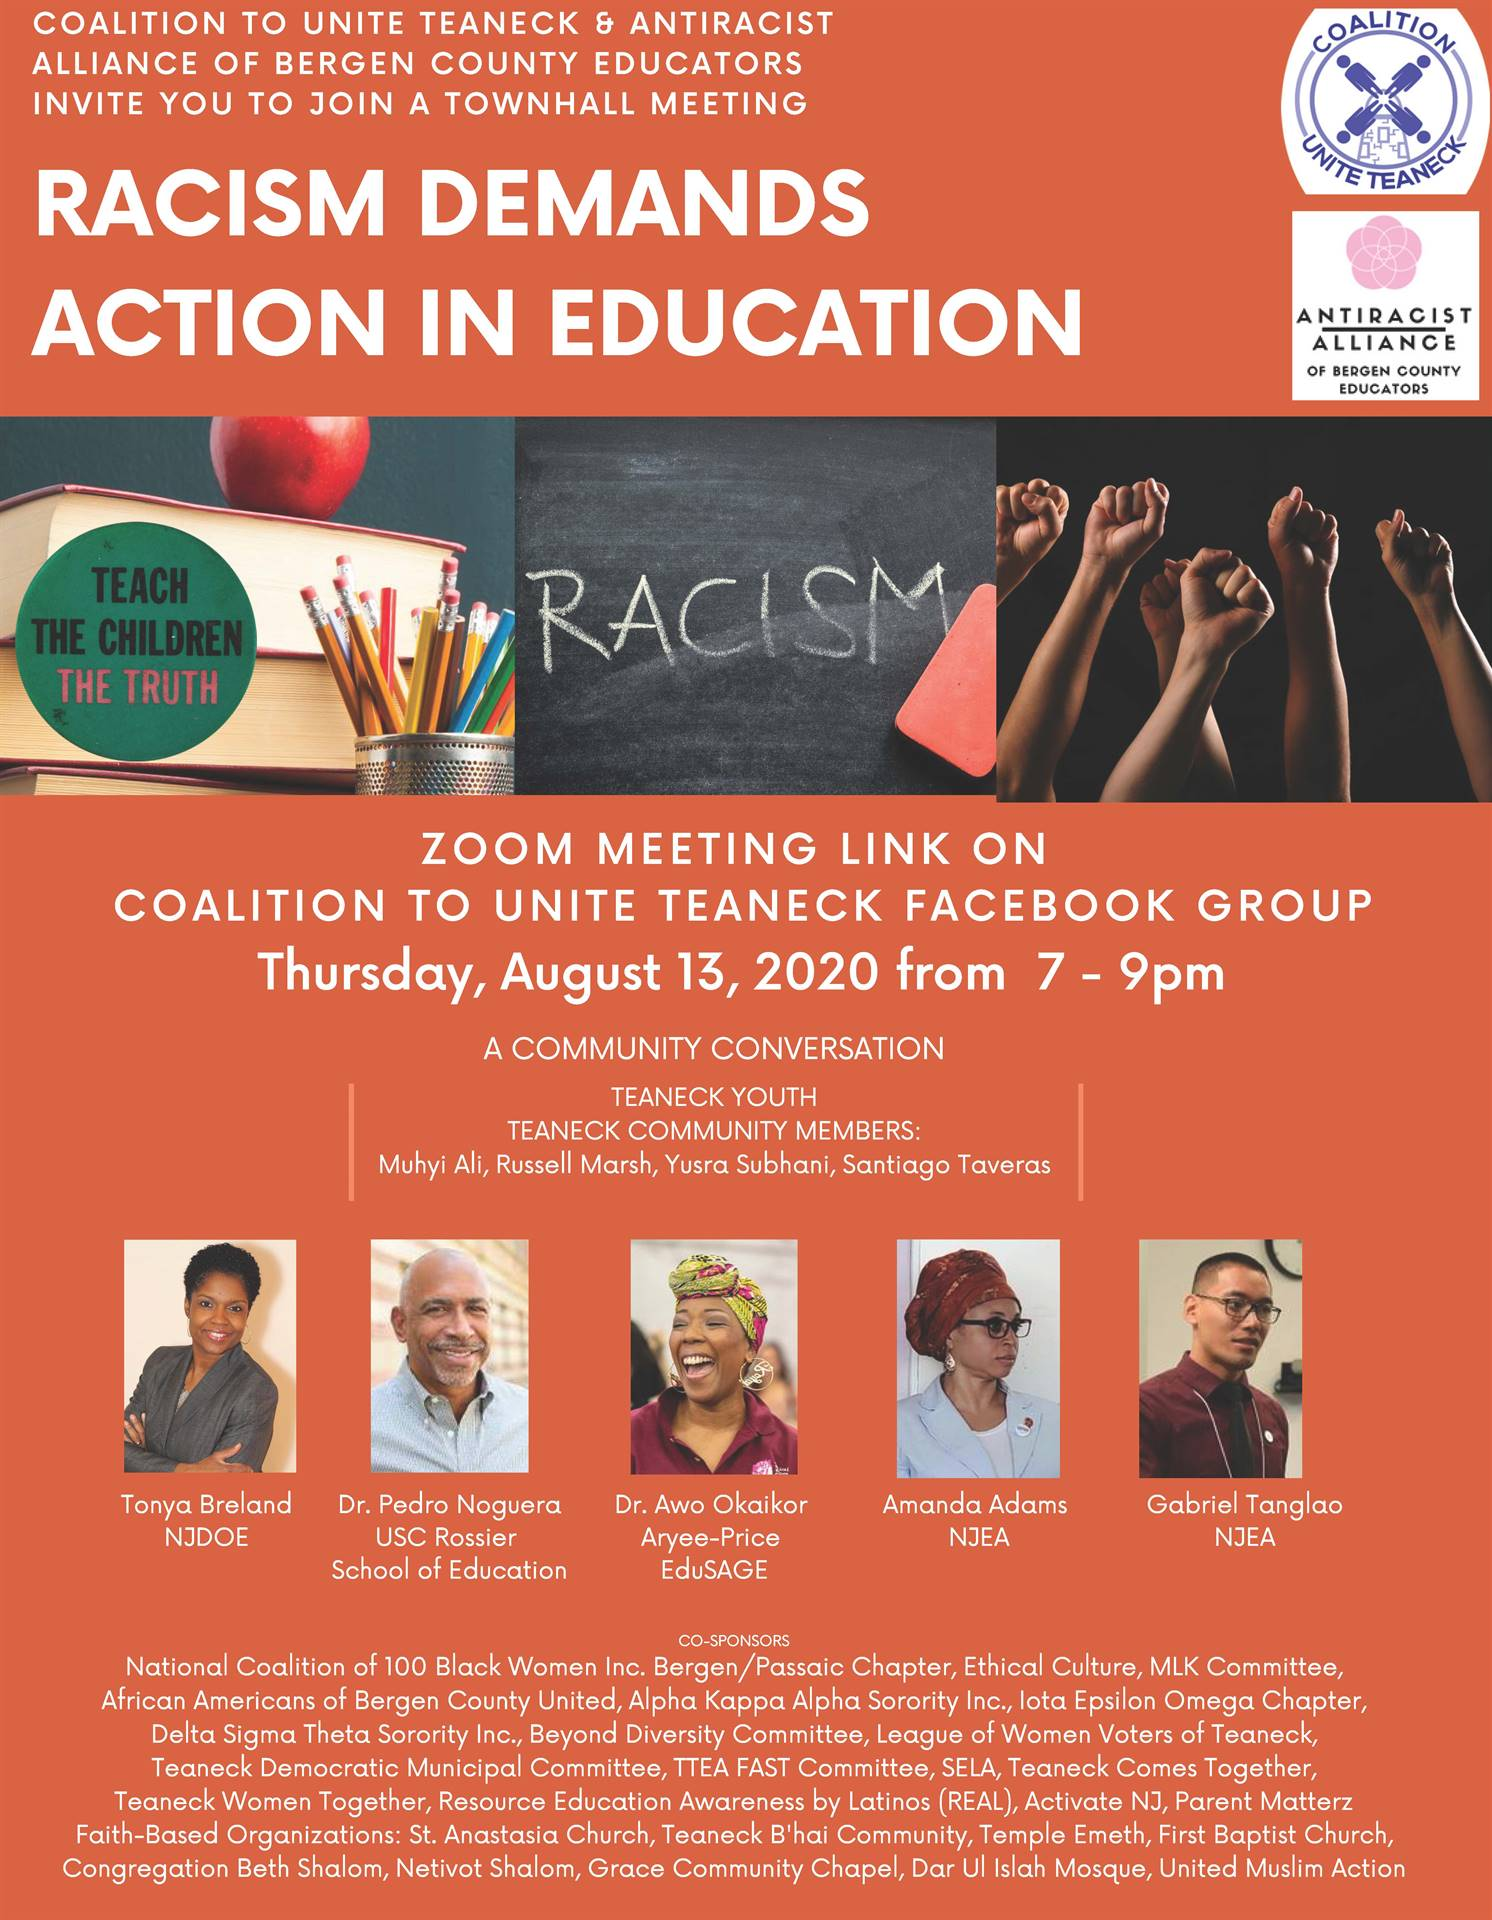 Racism Demands Action in Education